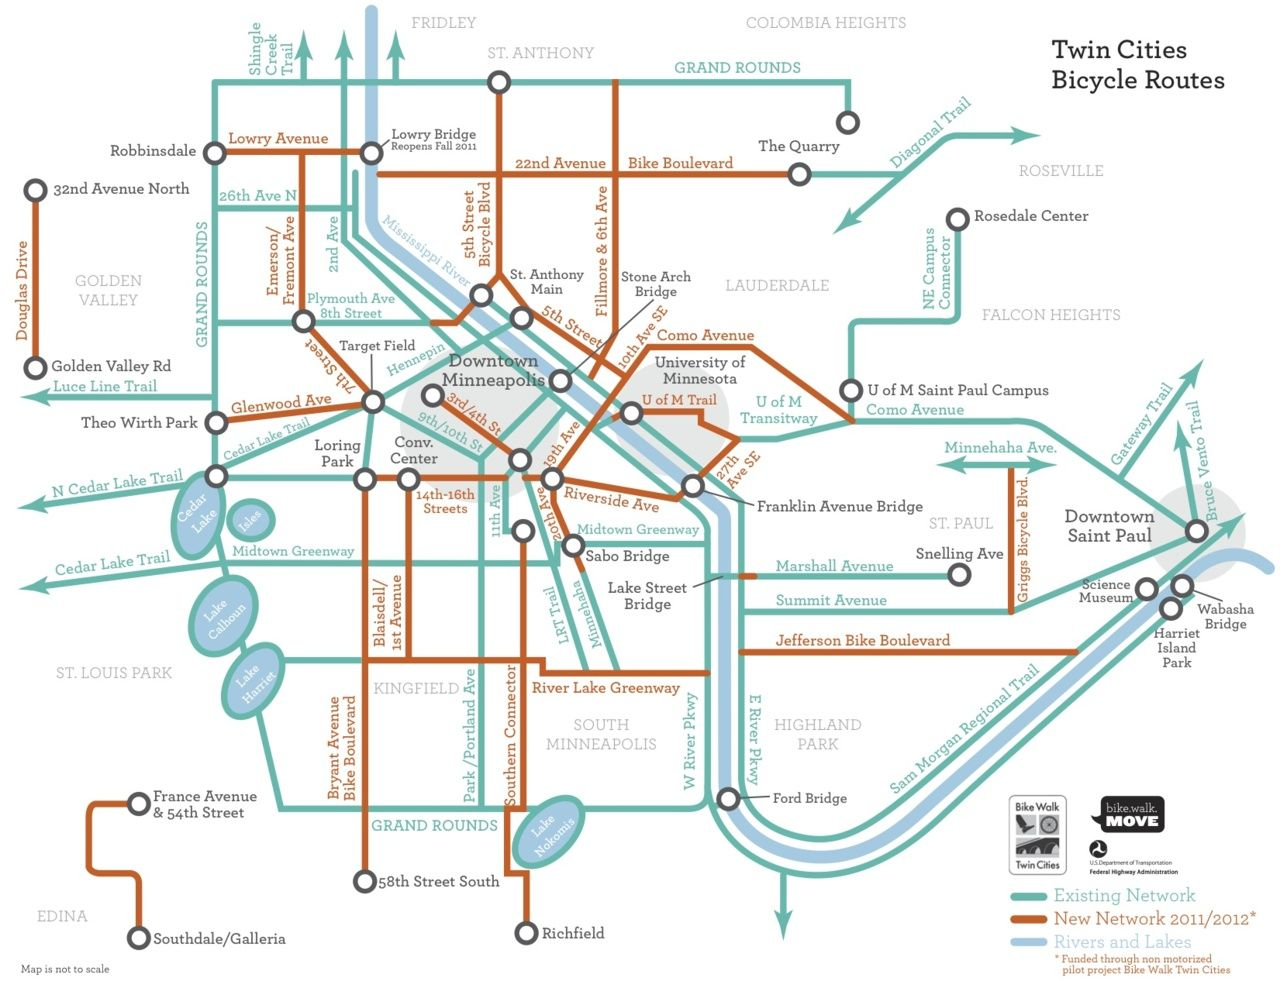 Minneapolis Subway Map.Mn Stuff About Minneapolis Bike Trails And Routes Bike Trails